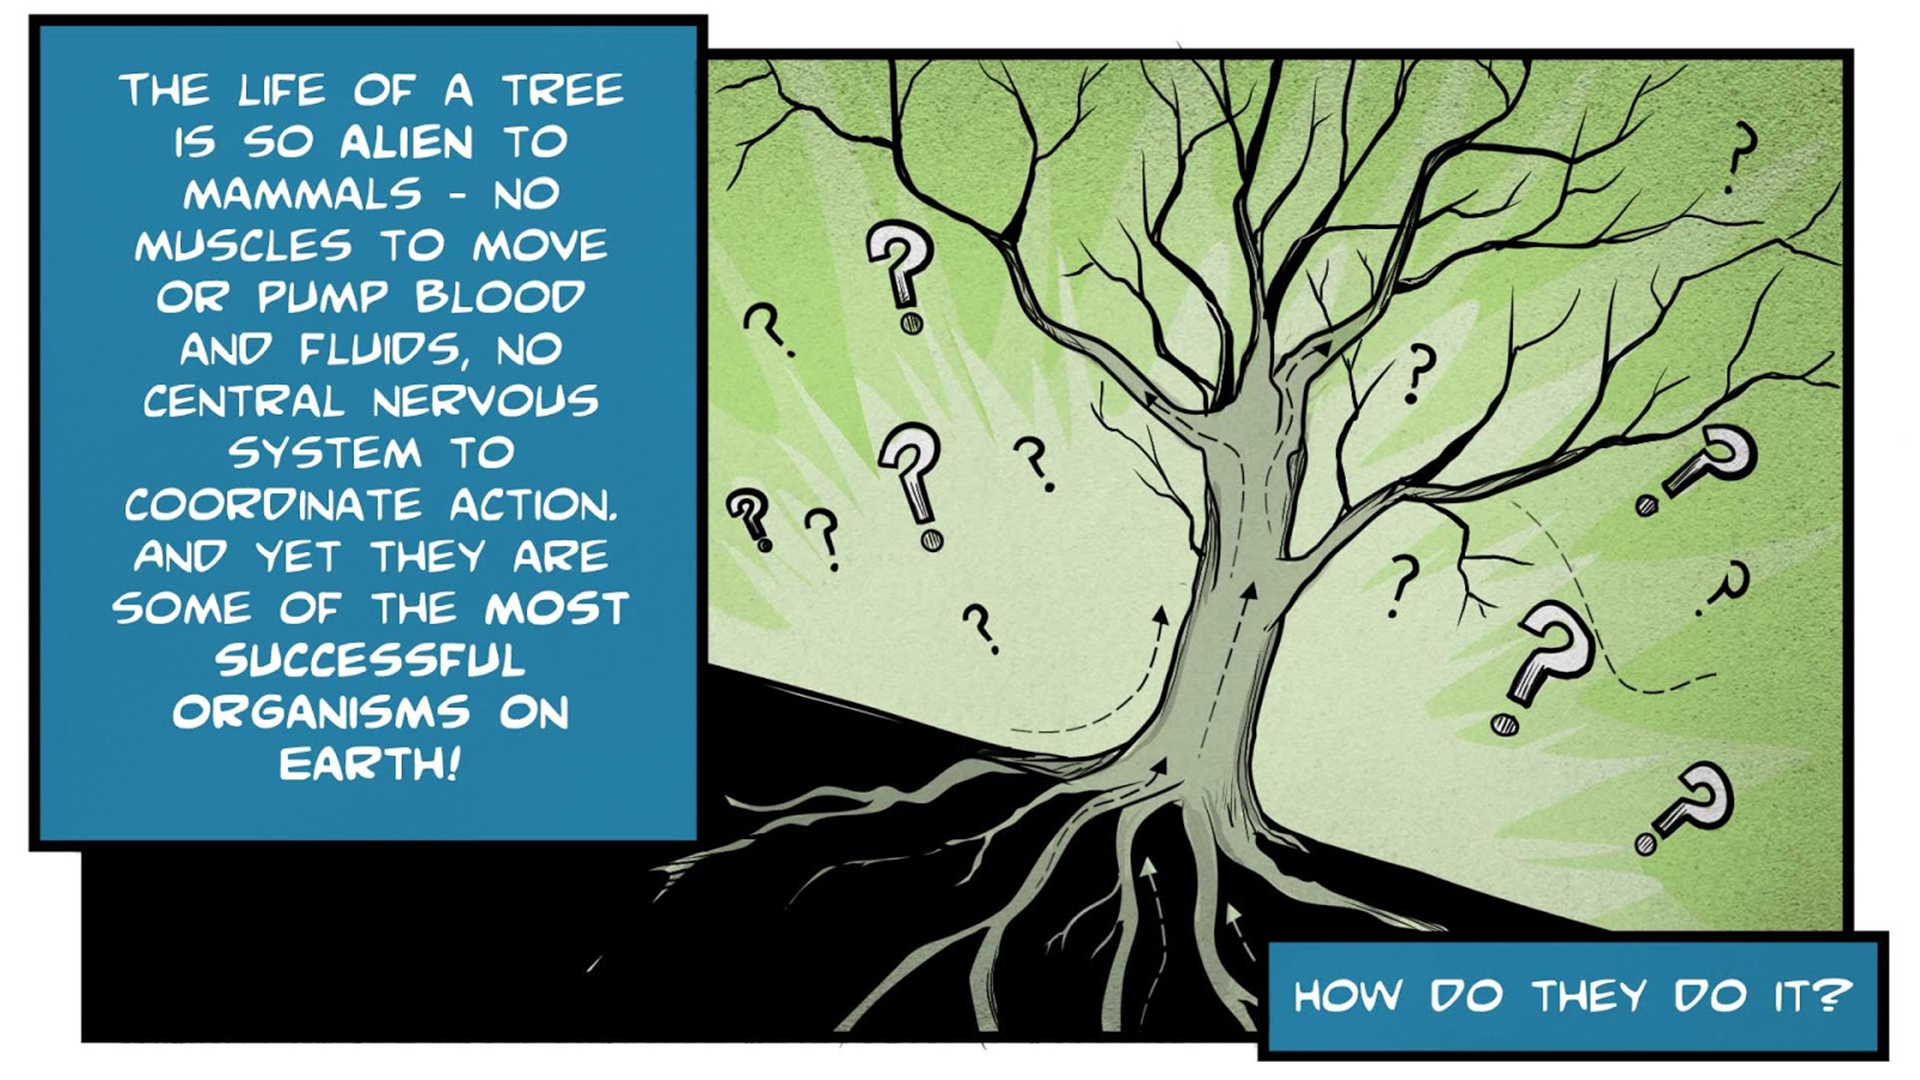 """Felix, the narrator, says, """"The life of a tree is so alient to mammals -- no muscles to move or pump blood and fluids, no central nervous system to coordinate action. And yet they are some of the most successful organisms on earth! How do they do it?"""" A tree is surrounded by question marks. Arrows show how nutrients and fluids move through the roots, trunk, and branches."""